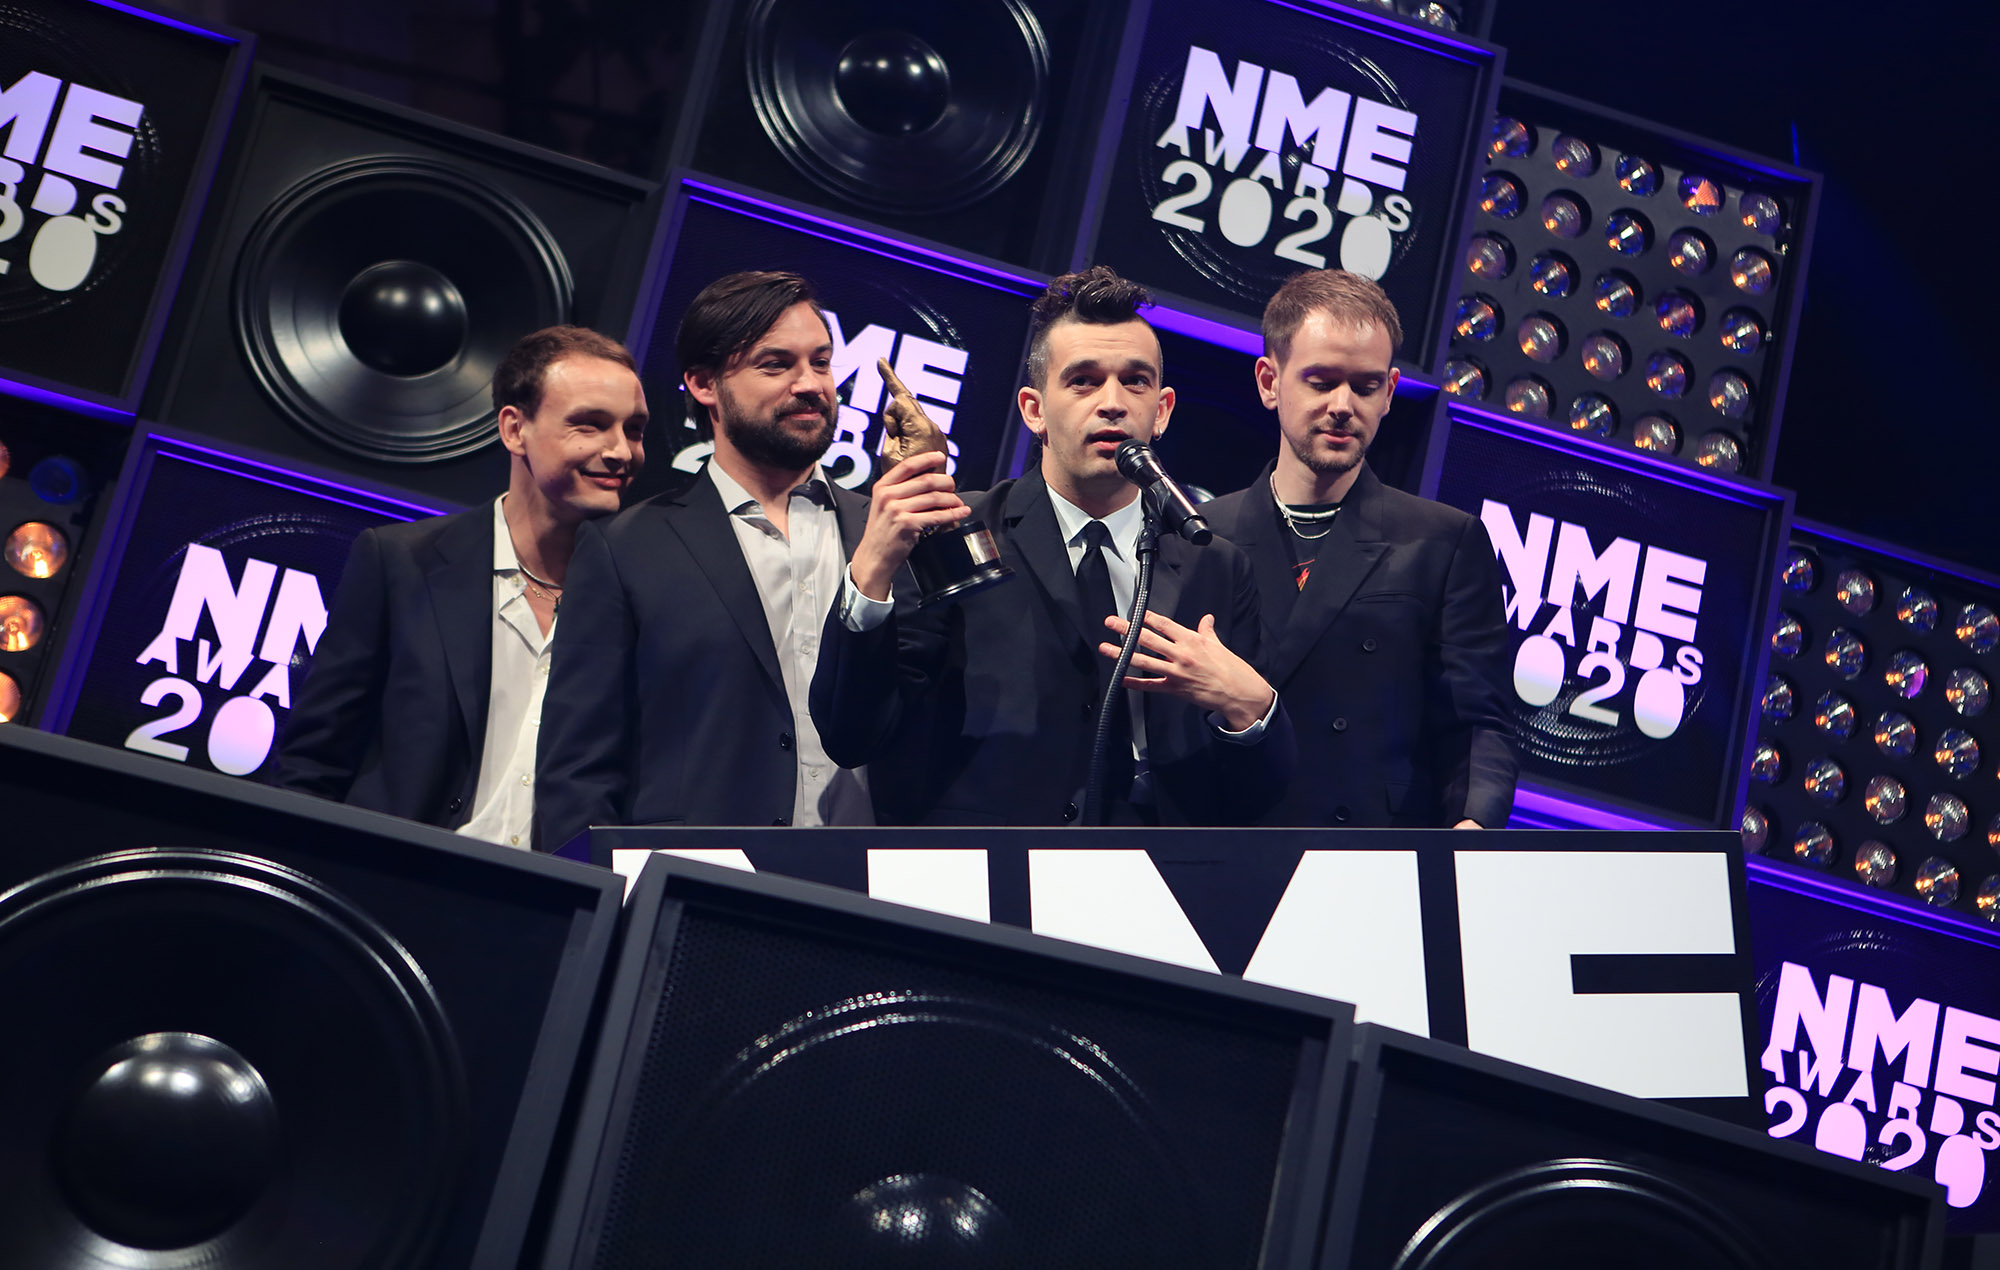 The 1975, NME Awards 2020